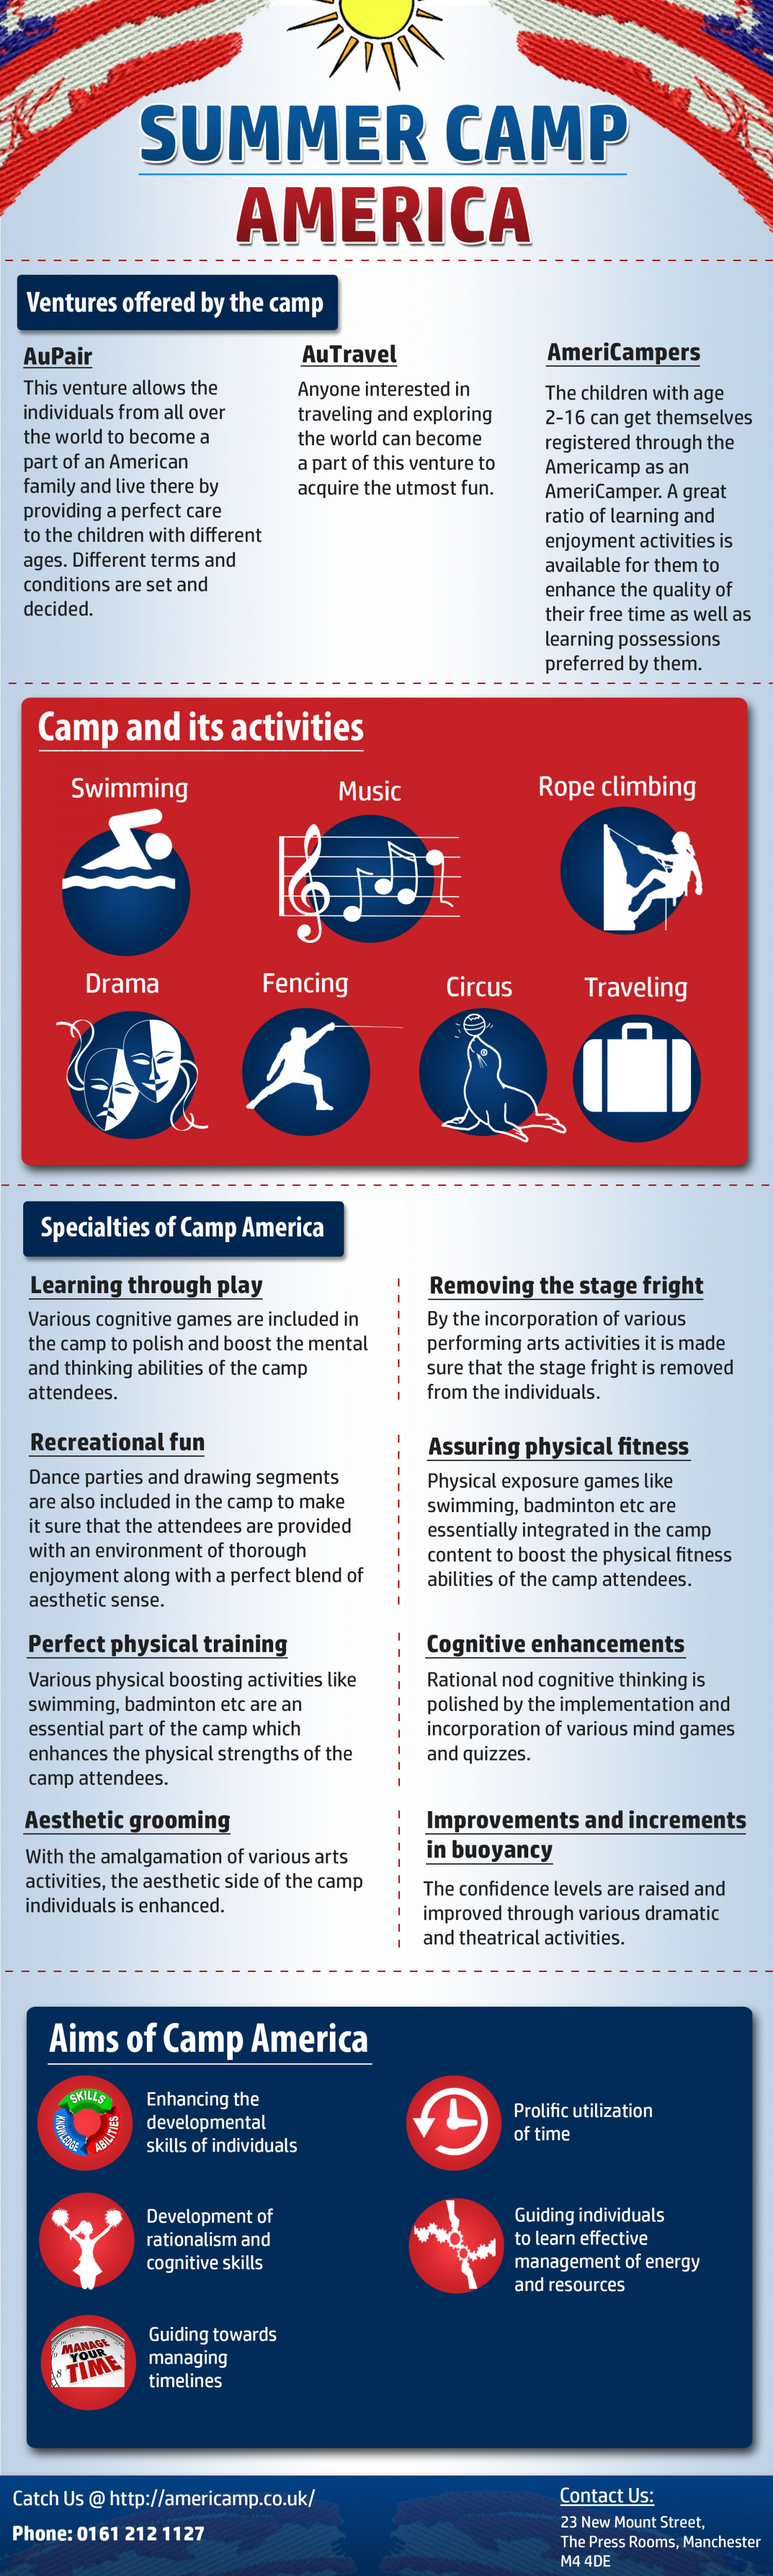 Summer Camp America Infographic